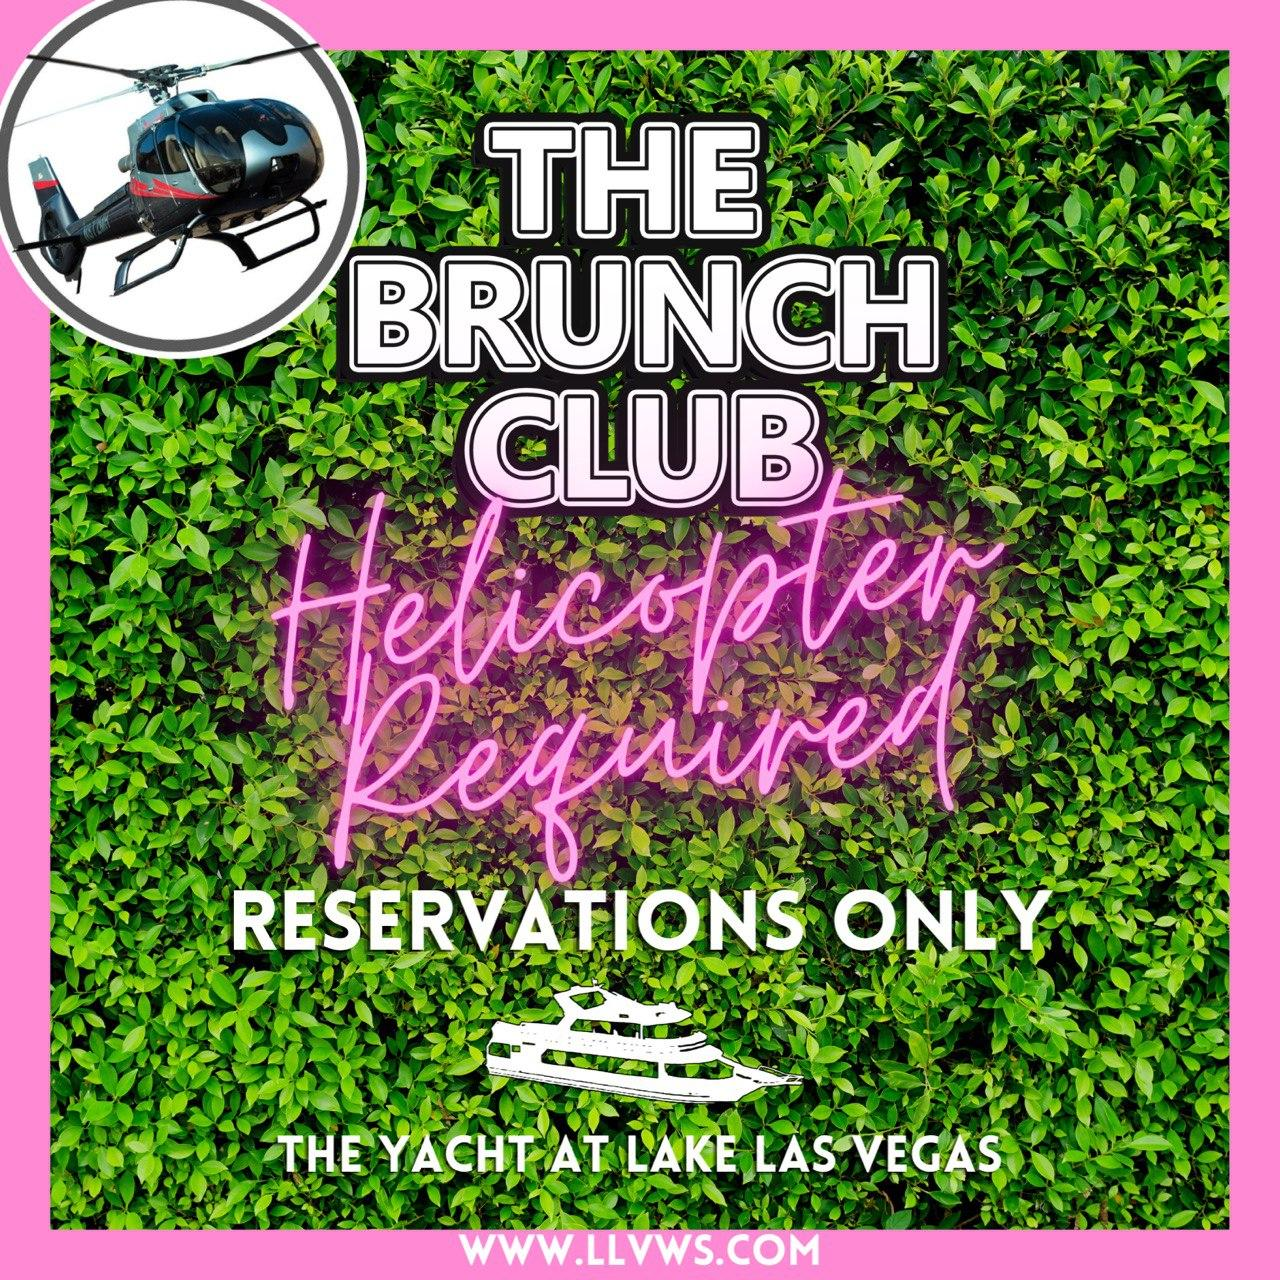 The Brunch Club at Lake Las Vegas: Helicopter Required